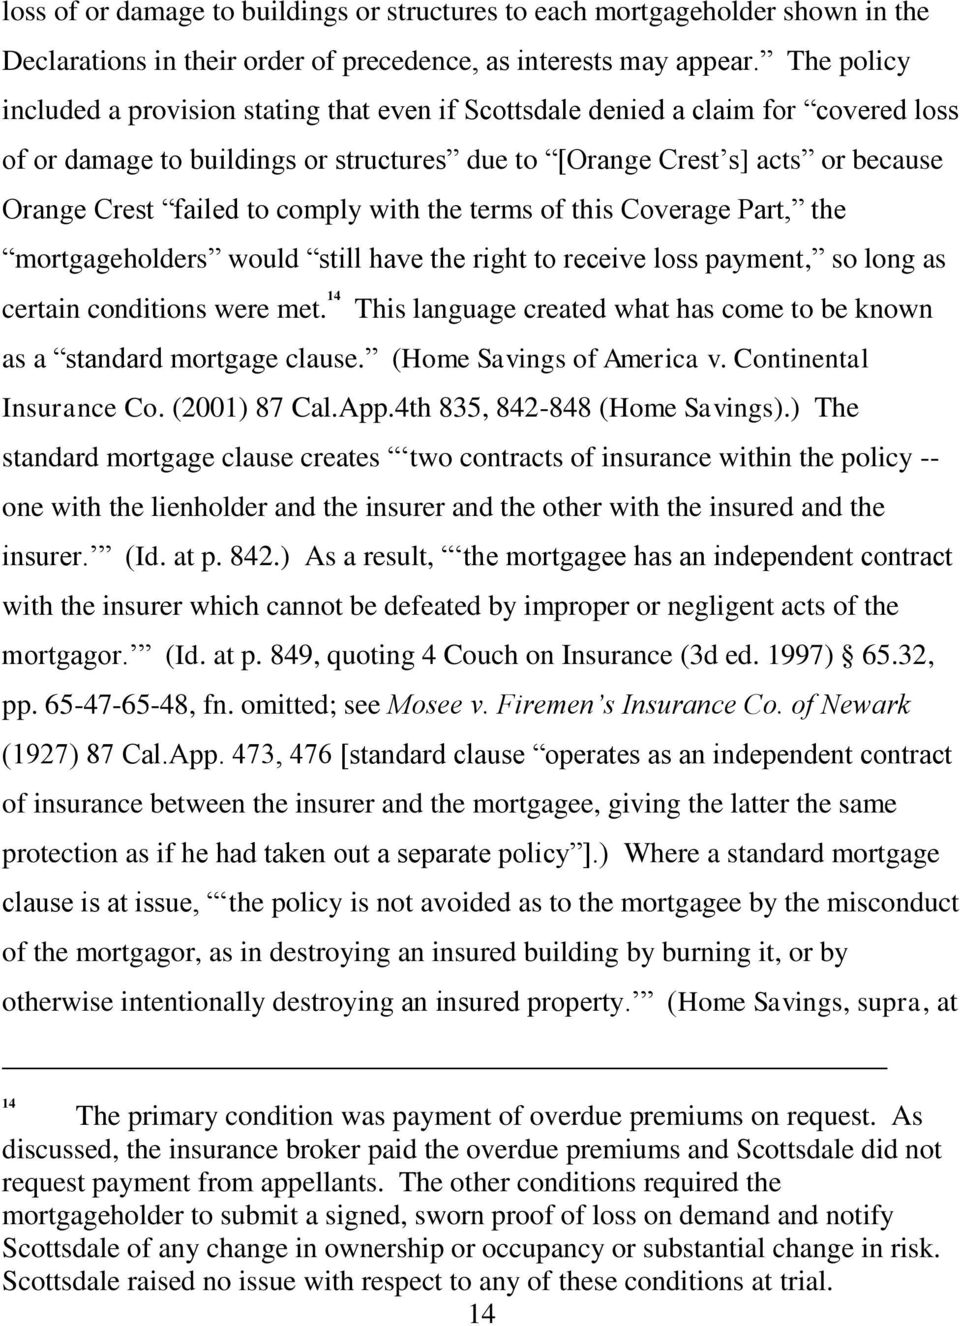 comply with the terms of this Coverage Part, the mortgageholders would still have the right to receive loss payment, so long as certain conditions were met.